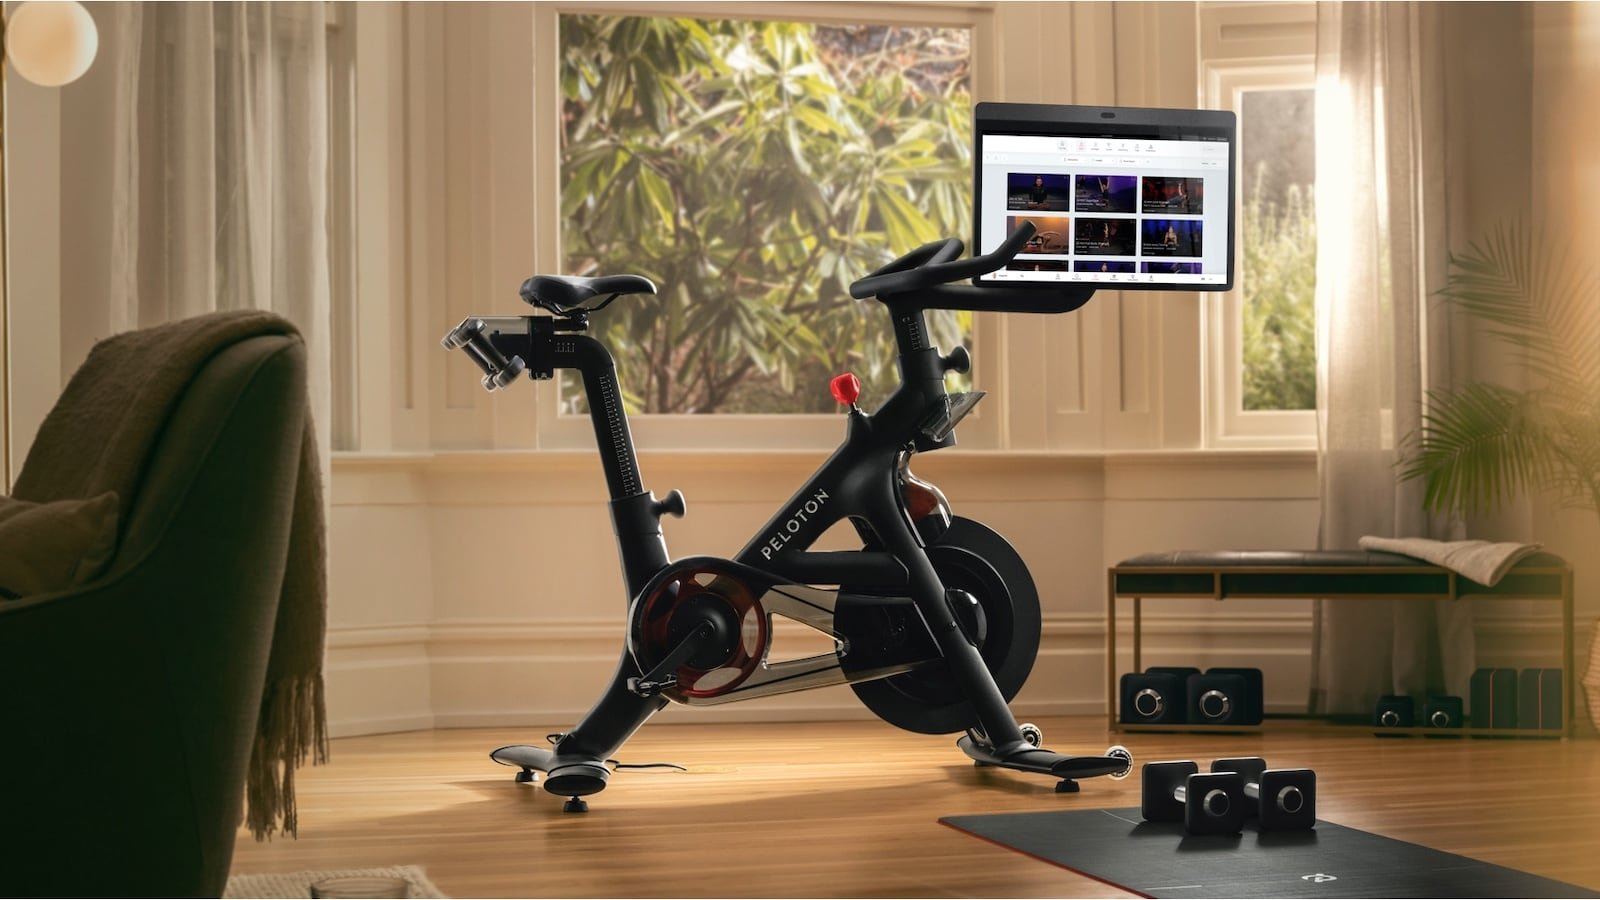 Peloton Bike+ home exercise bicycle lets you cycle, do yoga, stretch, and meditate